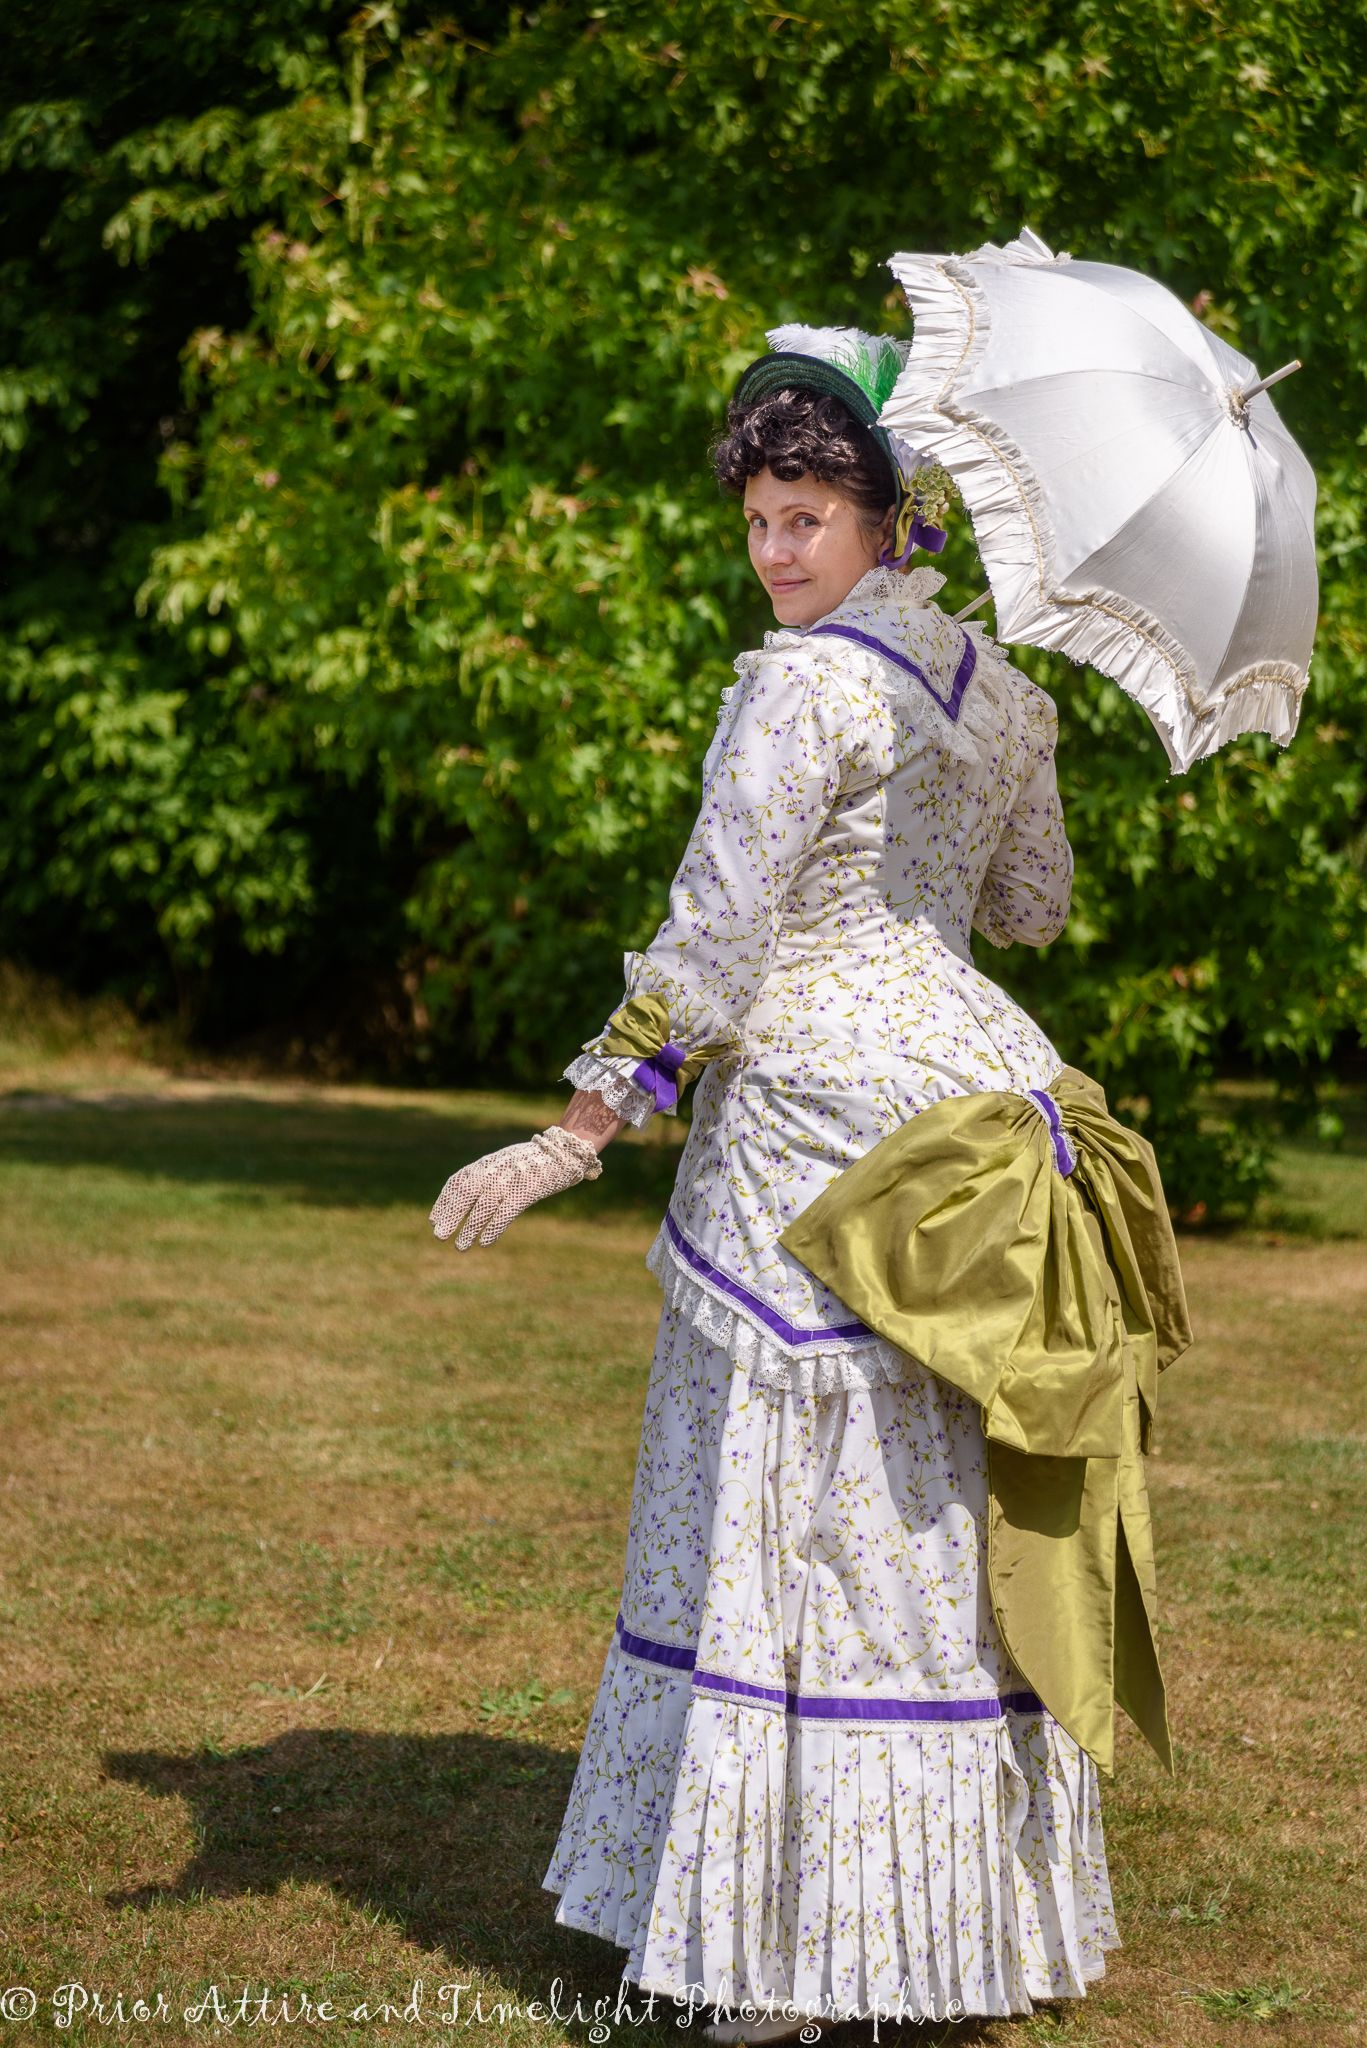 A Natural Form Day Summer Gown In Cotton By Prior Attire Victorian Fashion Victorian Clothing Edwardian Clothing [ 2048 x 1367 Pixel ]